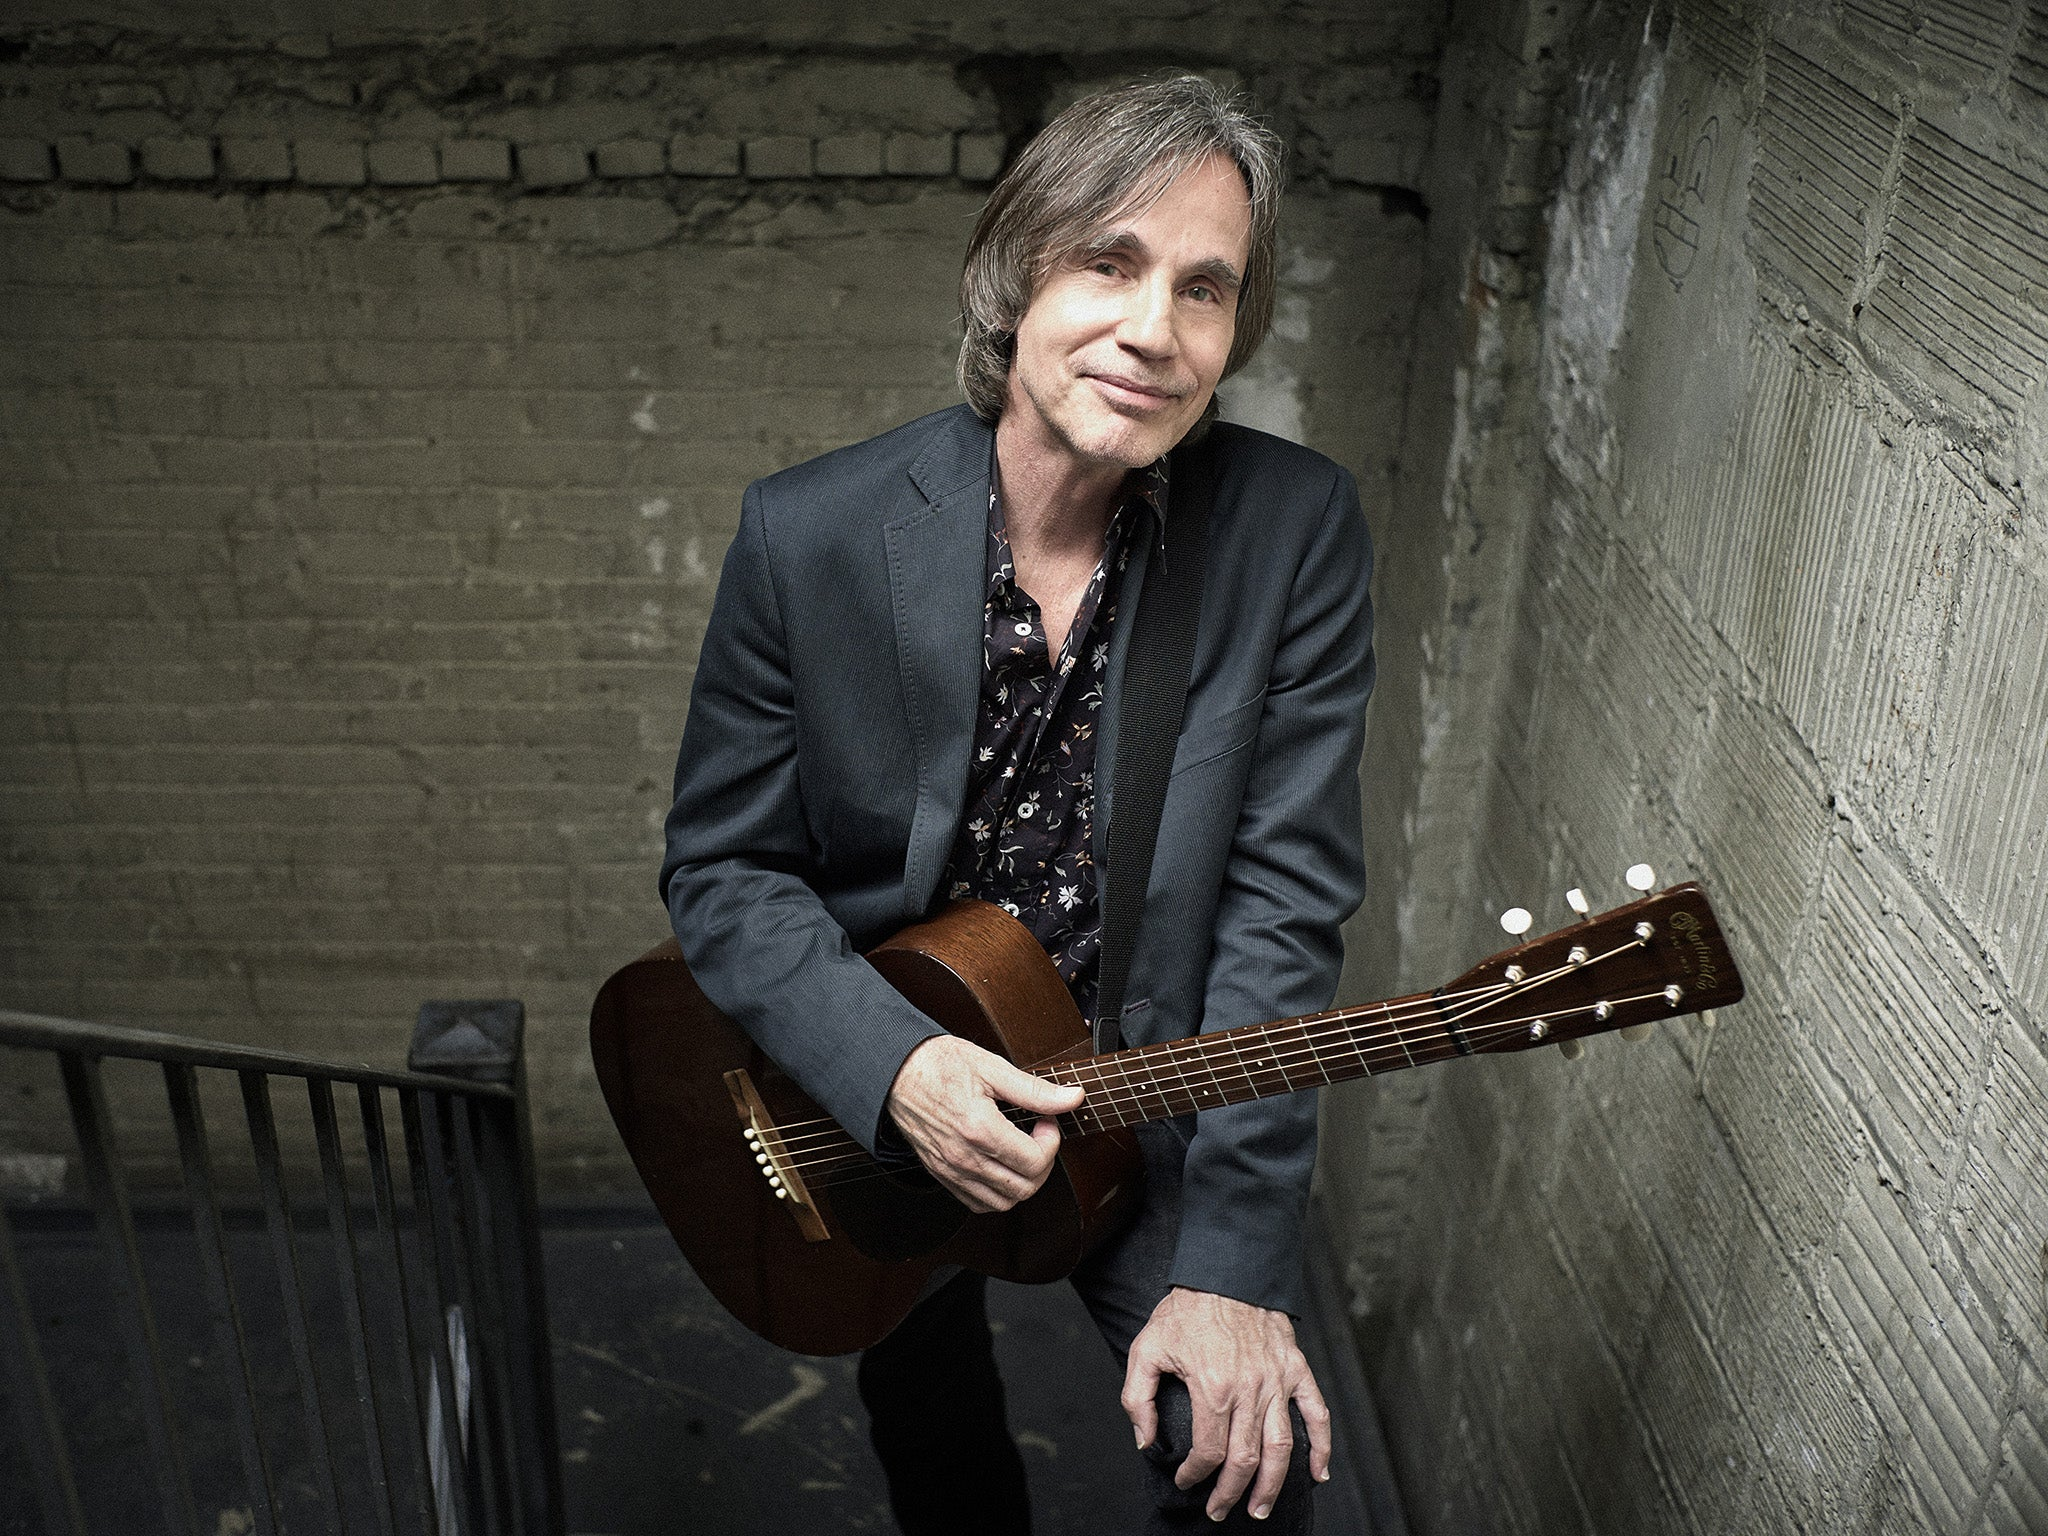 Jackson Browne Married Classy jackson browne interview: co-writer of the huge eagles hit on new